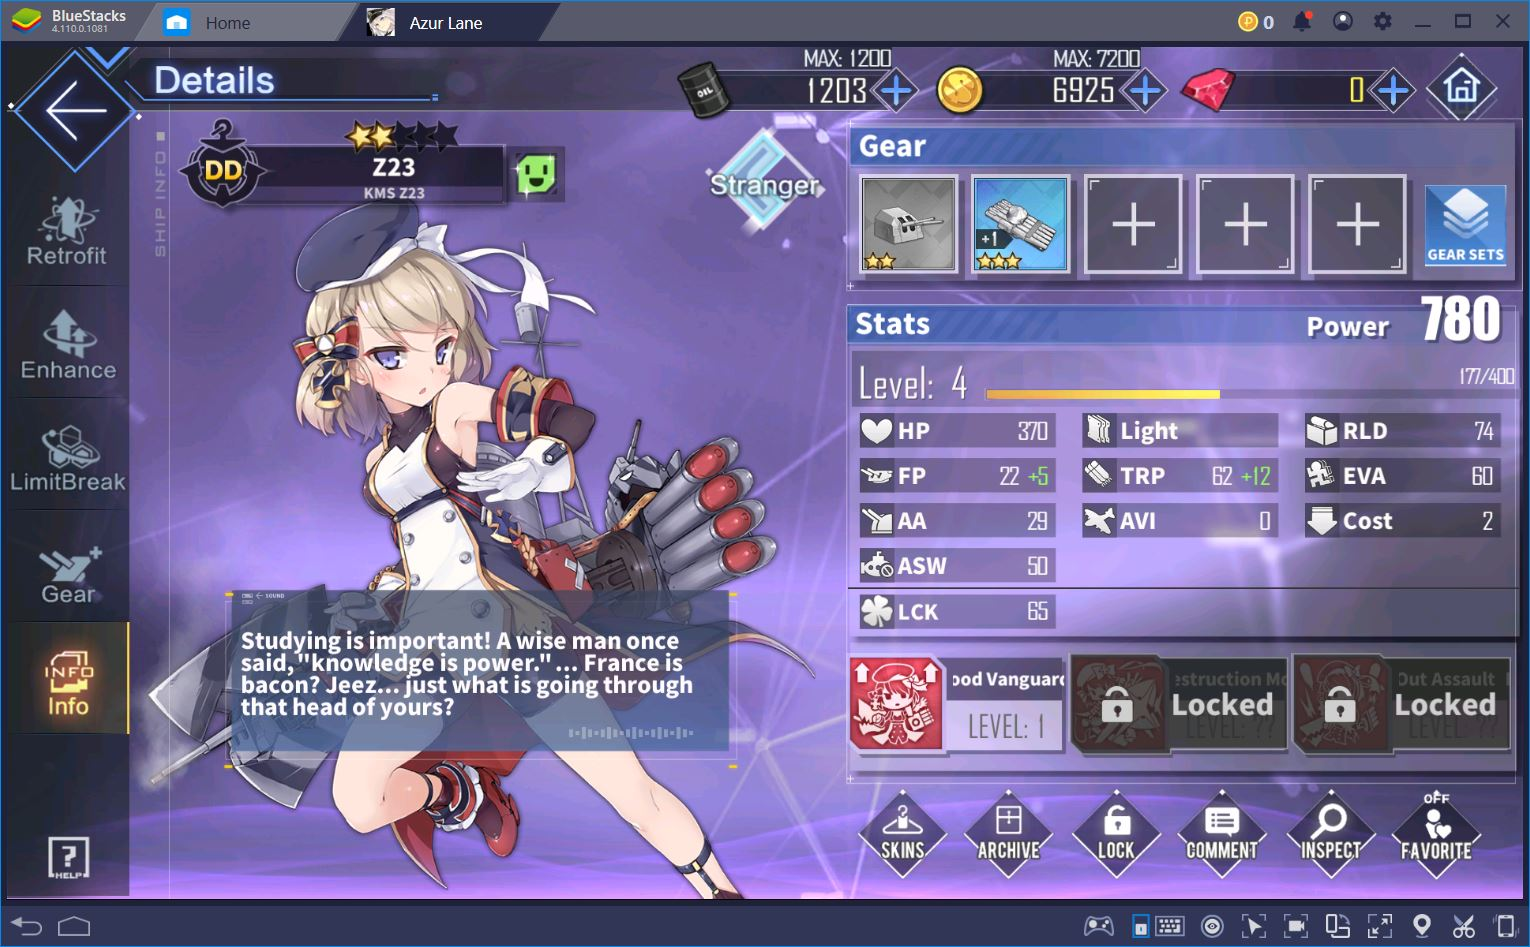 Azur Lane A Compendium of the Best Ships/Characters